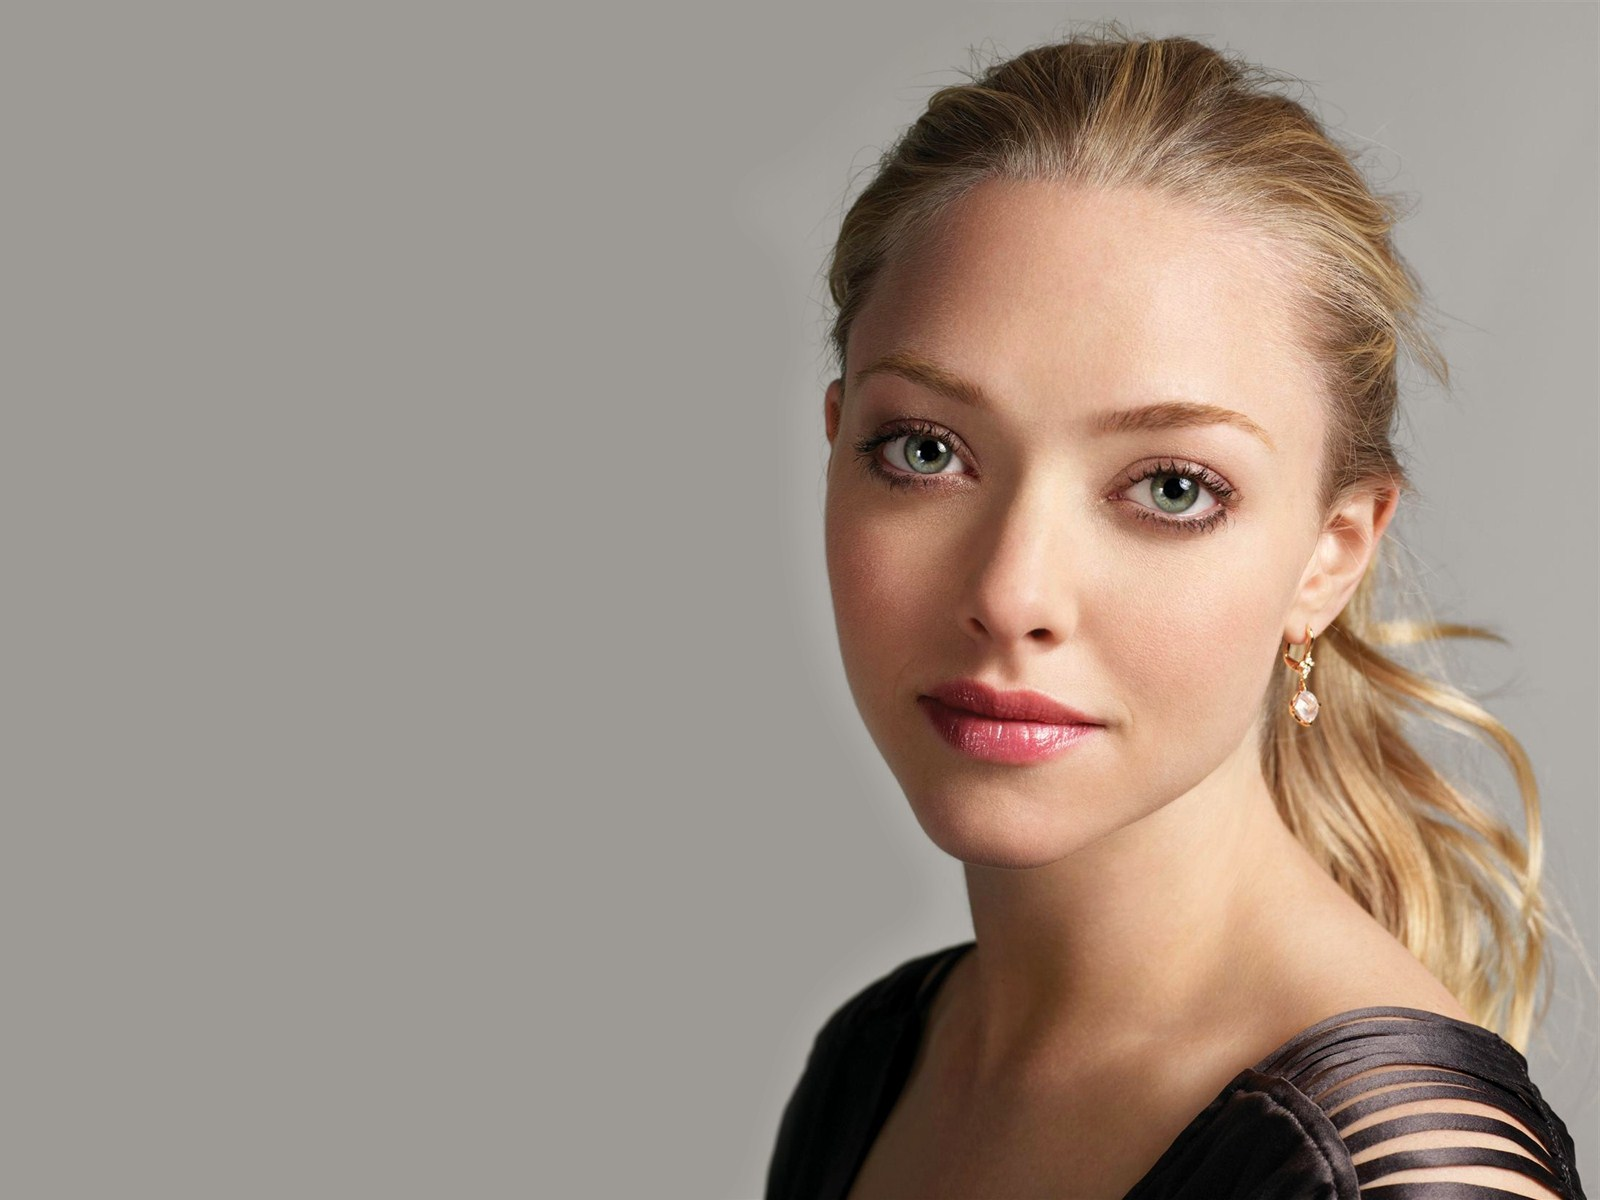 amanda seyfried latest wallpaper 2013 amanda seyfried latest wallpaper ... Amanda Seyfried